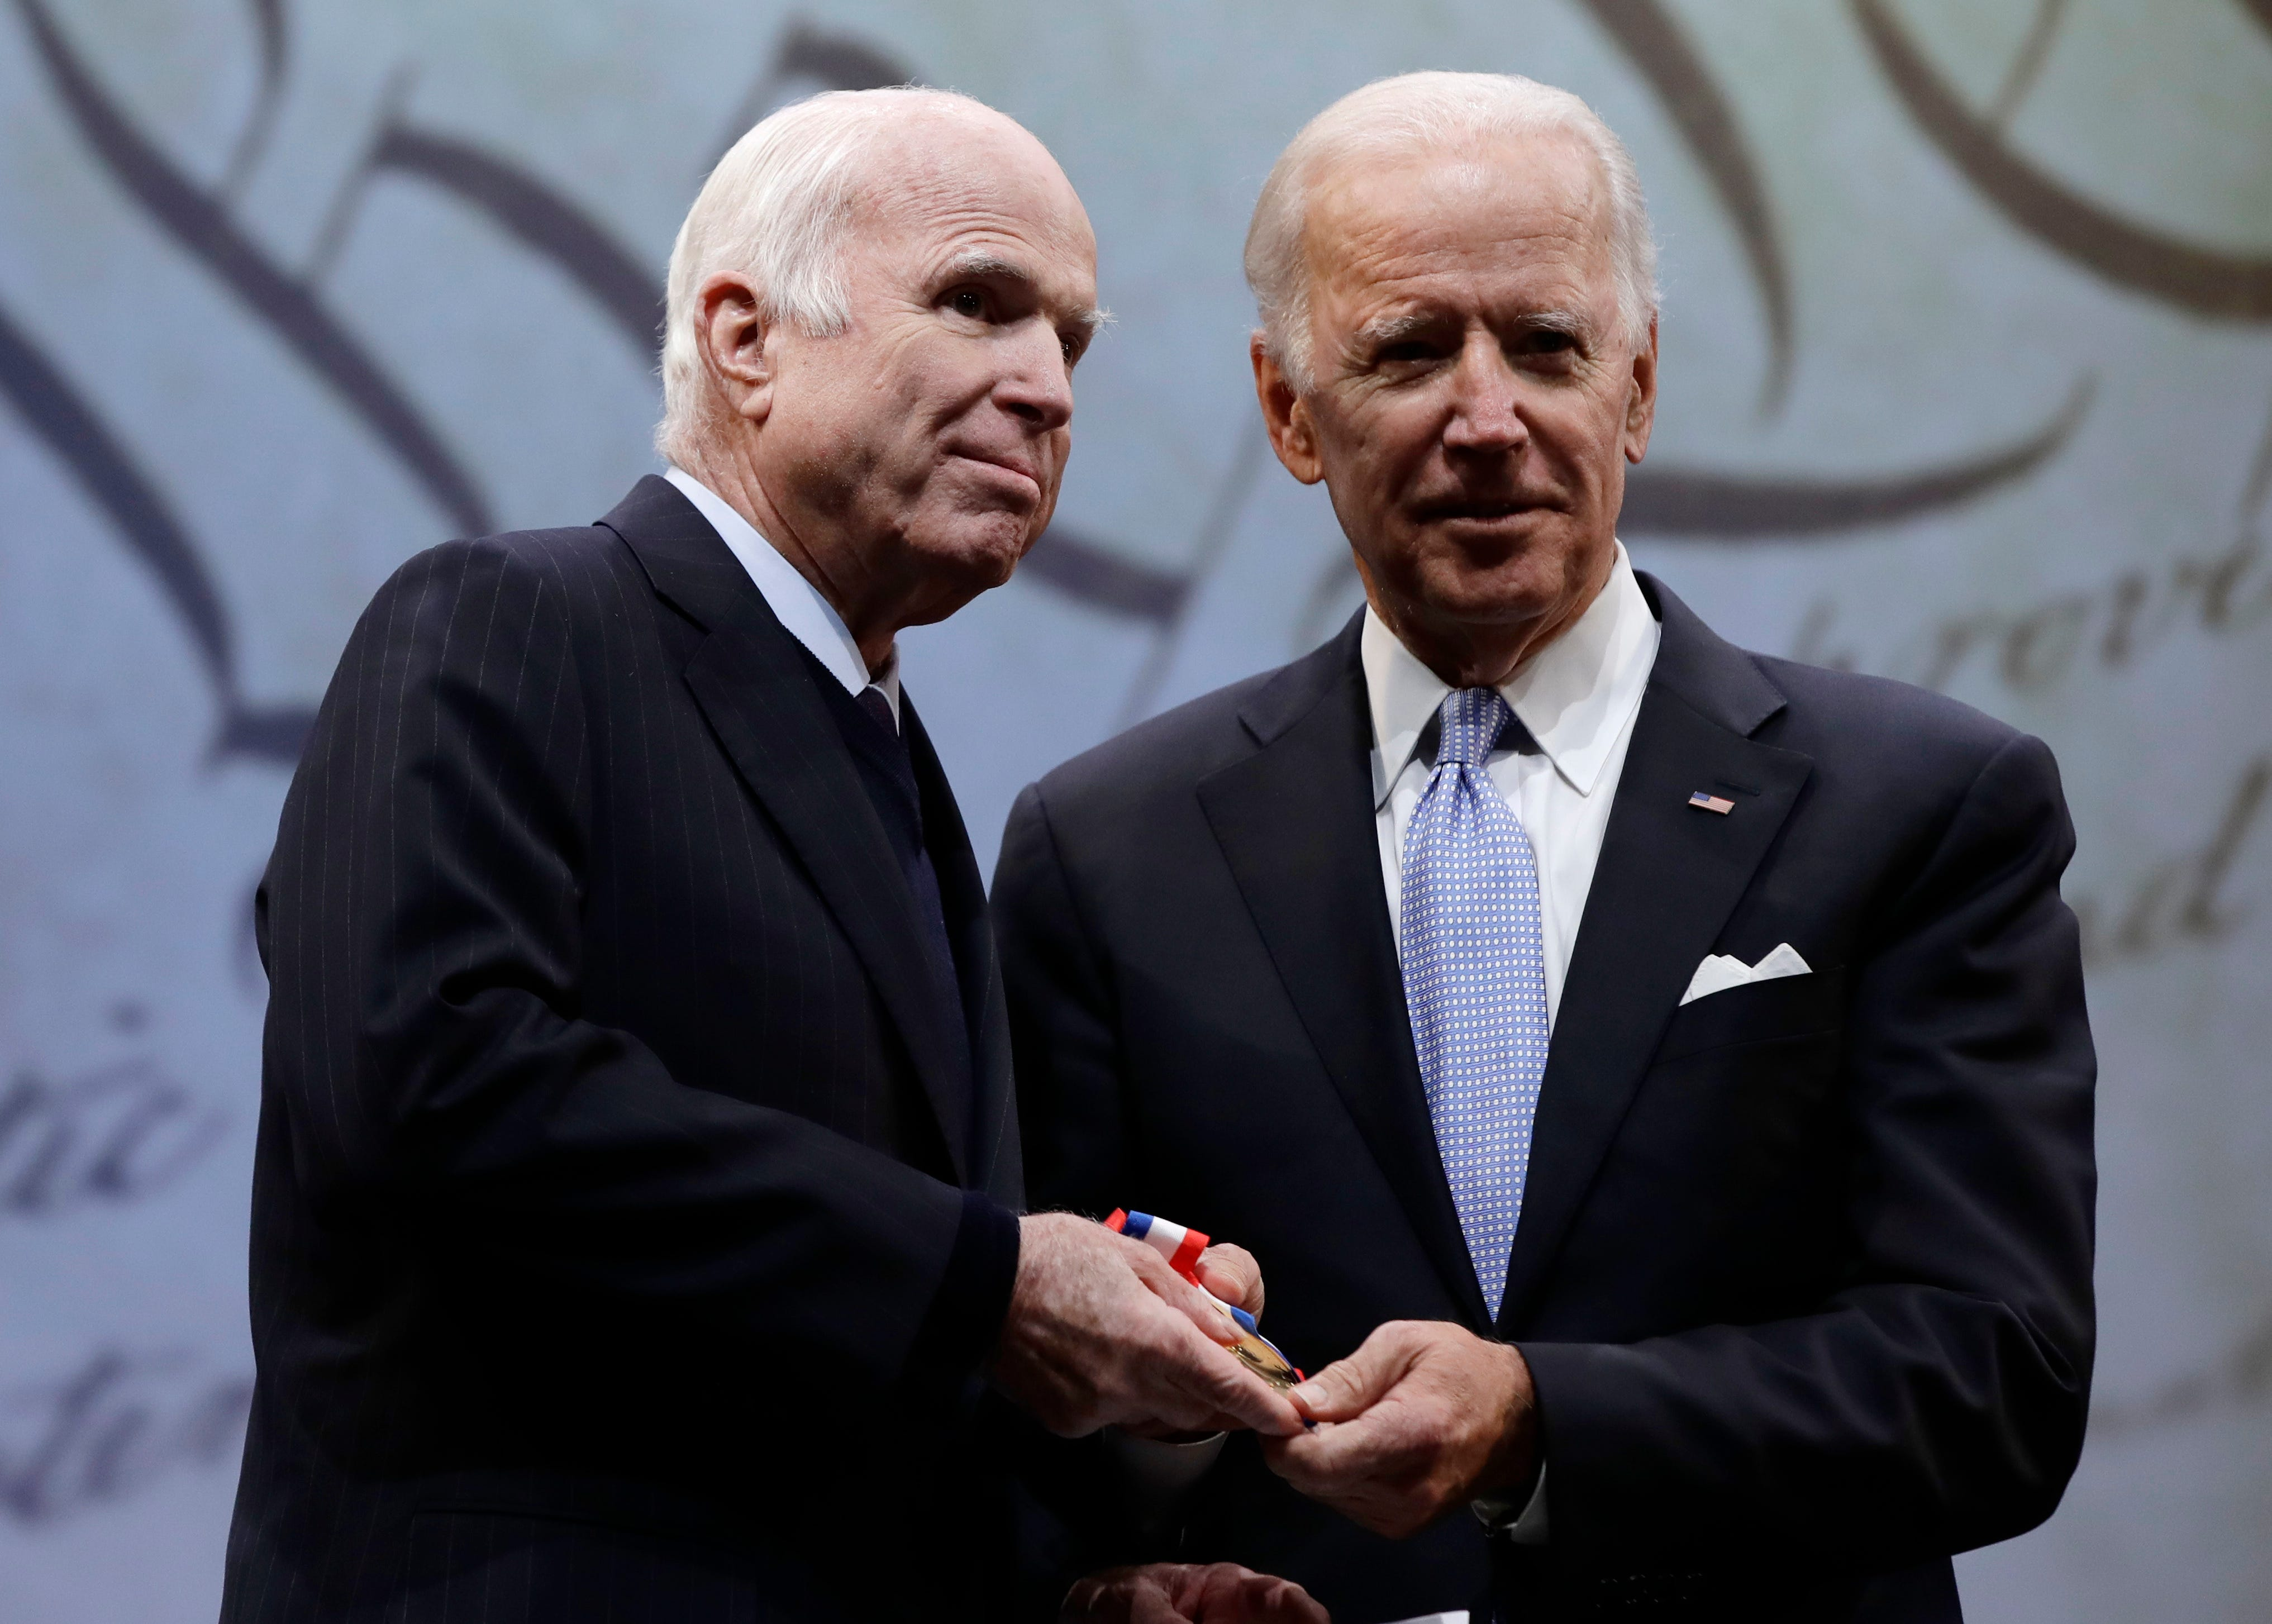 John McCain: Why Joe Biden will eulogize his longtime friend. 'If he needed my personal help, I'd go'